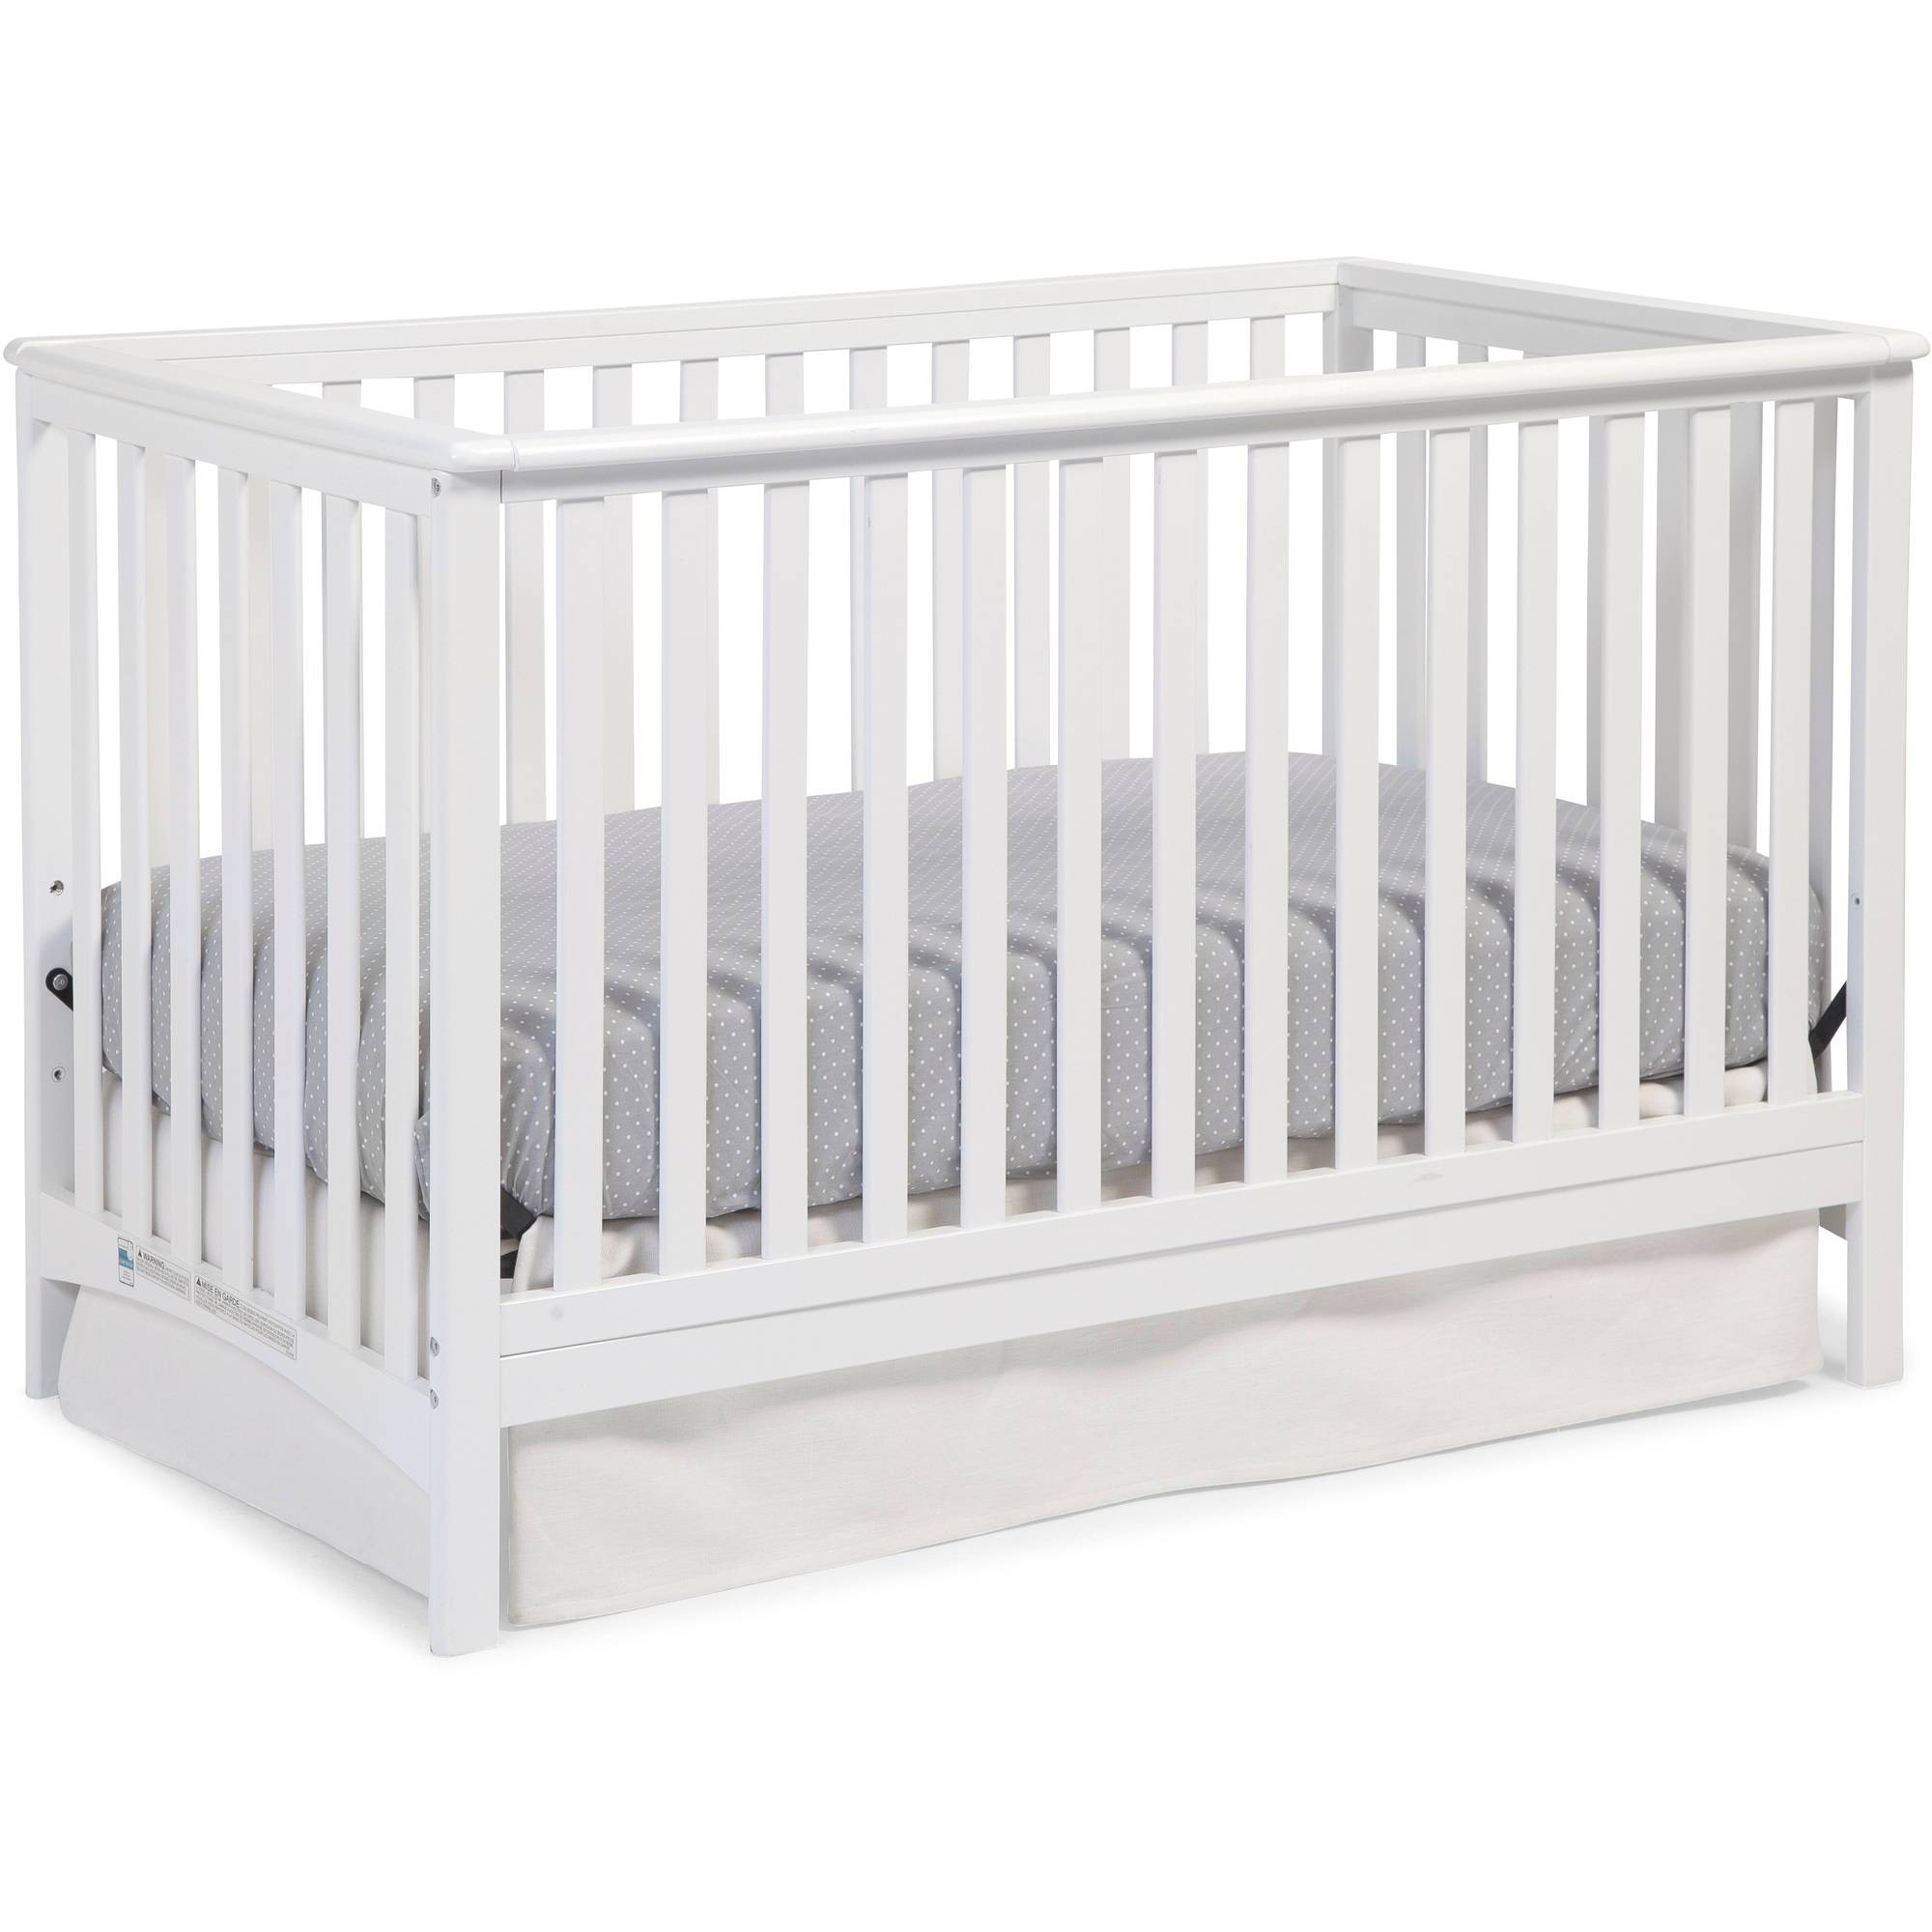 Storkcraft Hillcrest 4 in 1 Convertible Crib White